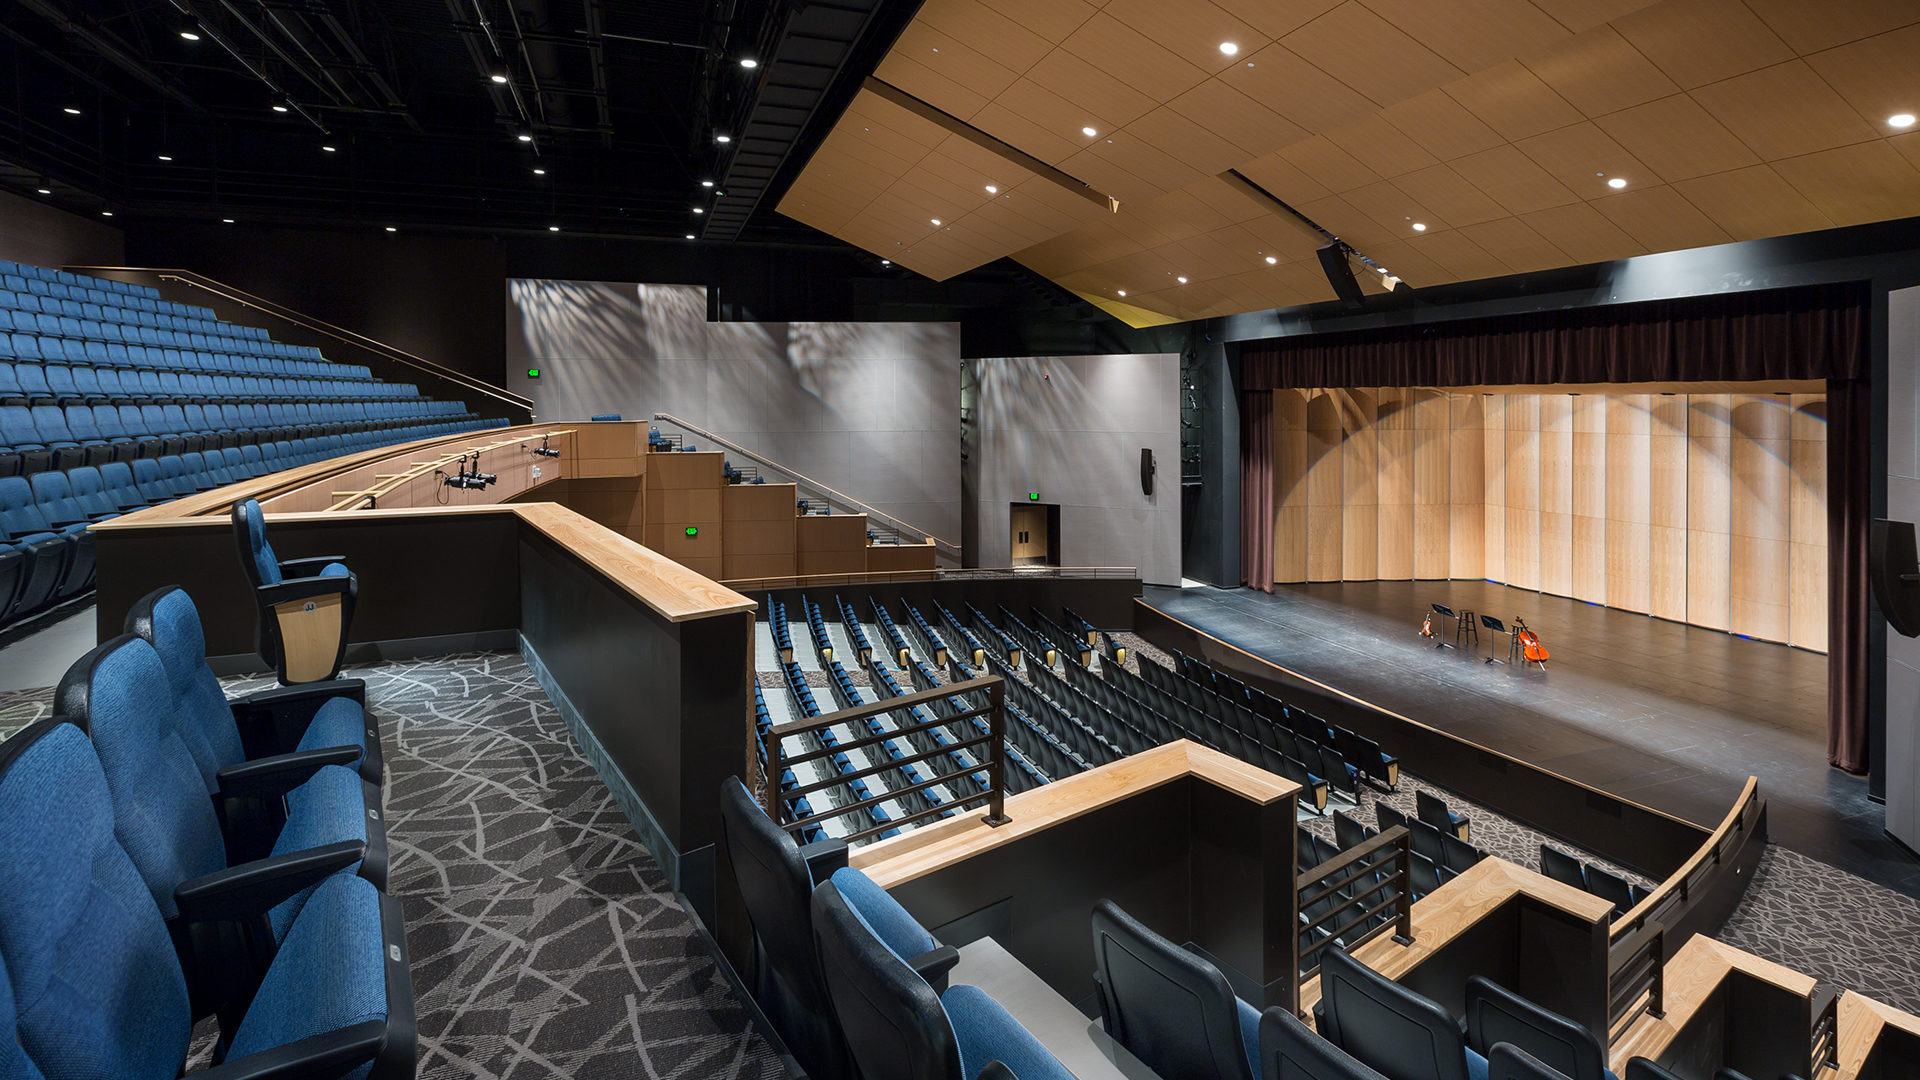 Alexandria High School Interior Performing Arts Theater